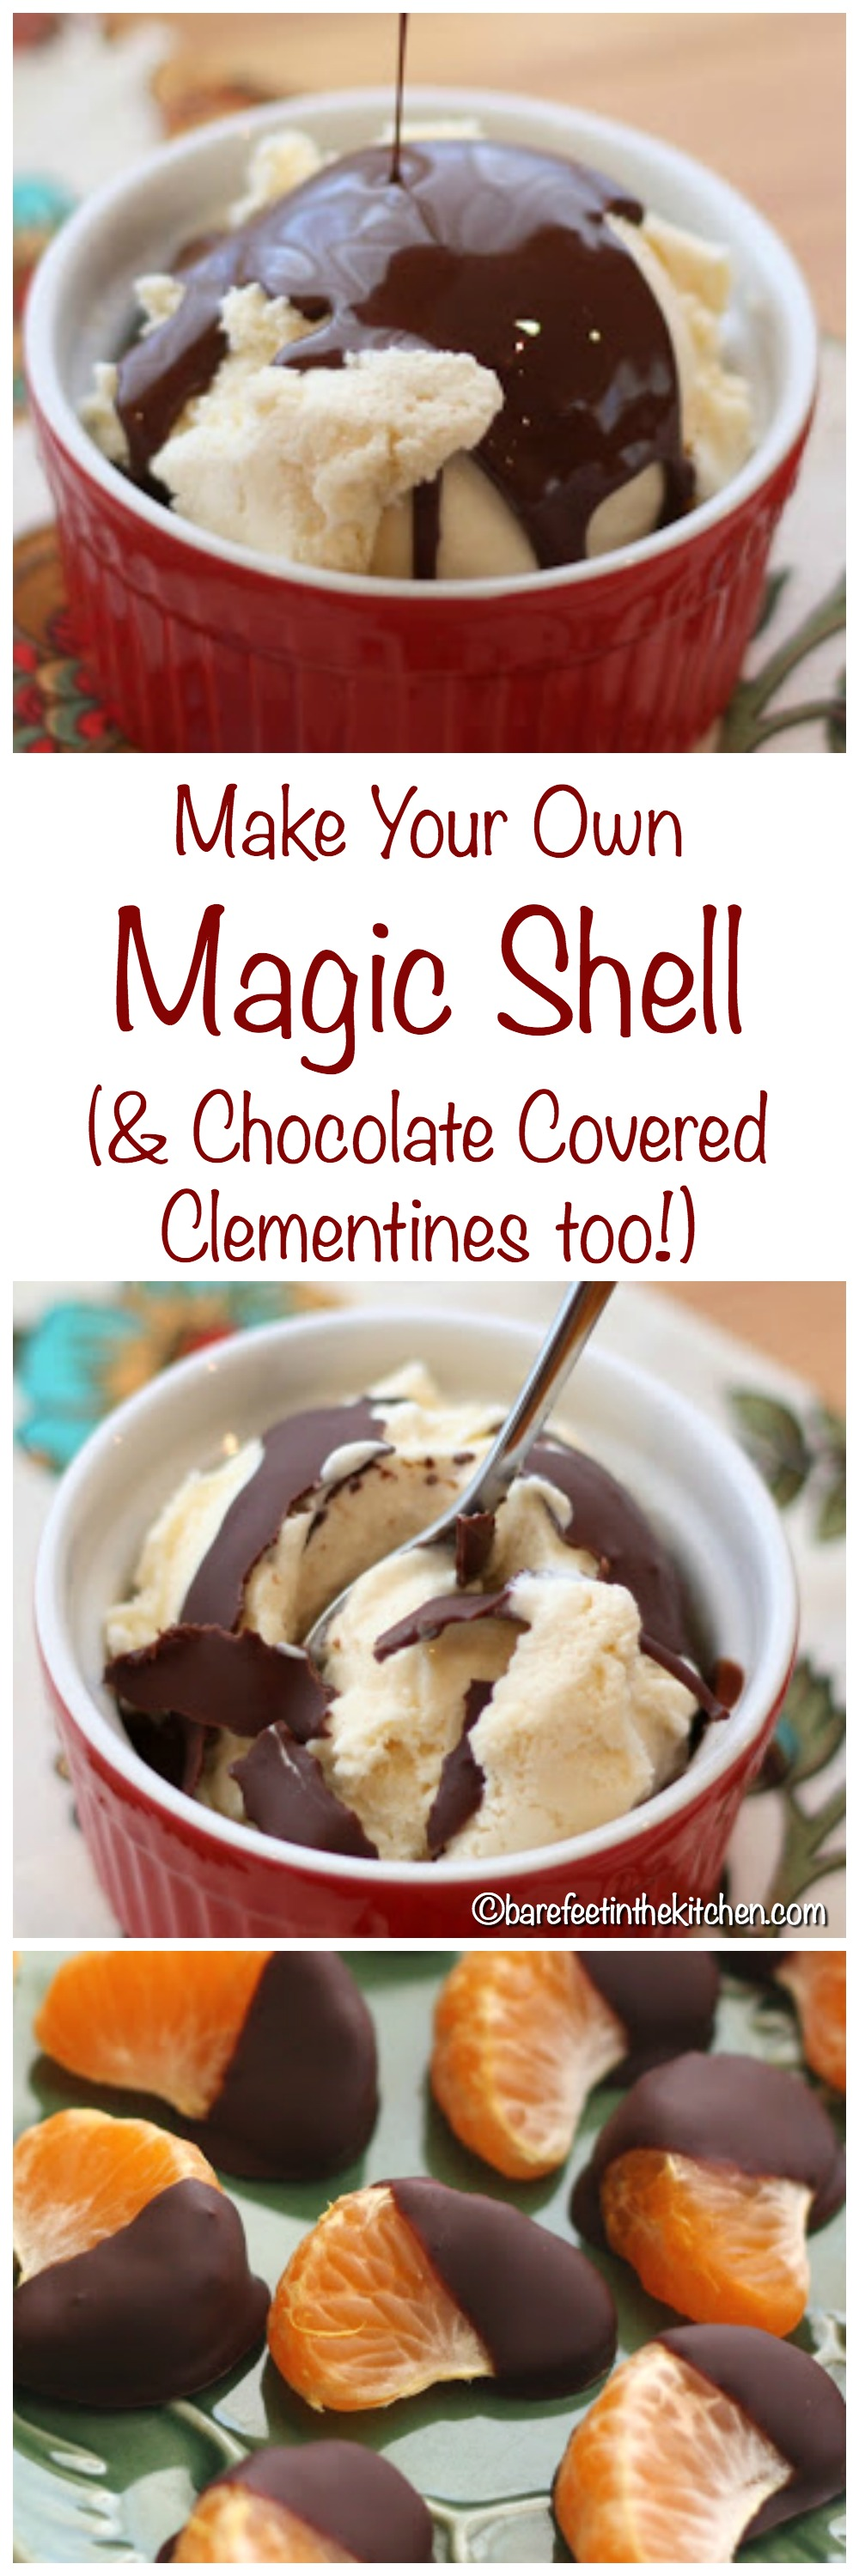 Make your own Magic Shell and then try the Chocolate Covered Clementines! They just might be your favorite treat this winter. Get the recipes at barefeetinthekitchen.com